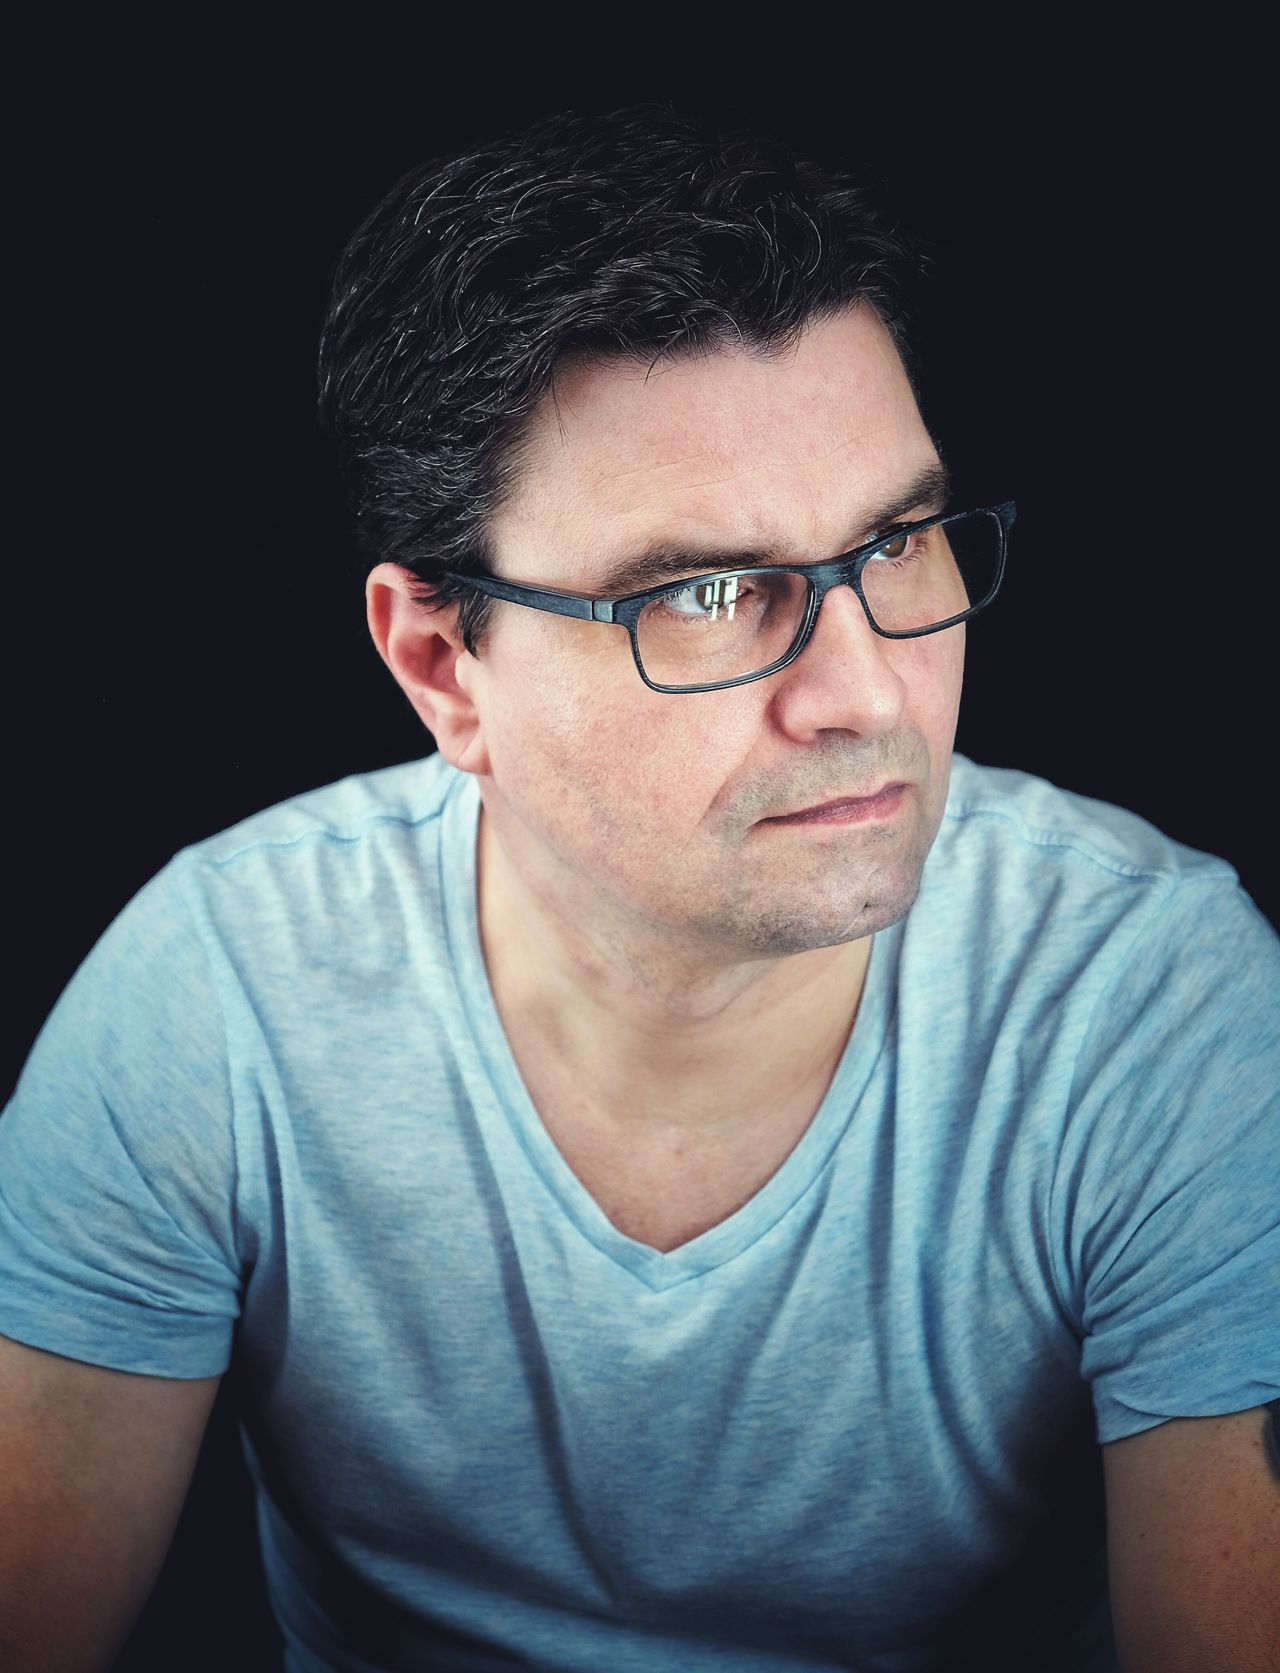 Portrait Black Background Studio Shot One Man Only Only Men Looking At Camera Adults Only One Person Front View Eyeglasses  Adult Men People Real People Young Adult Close-up